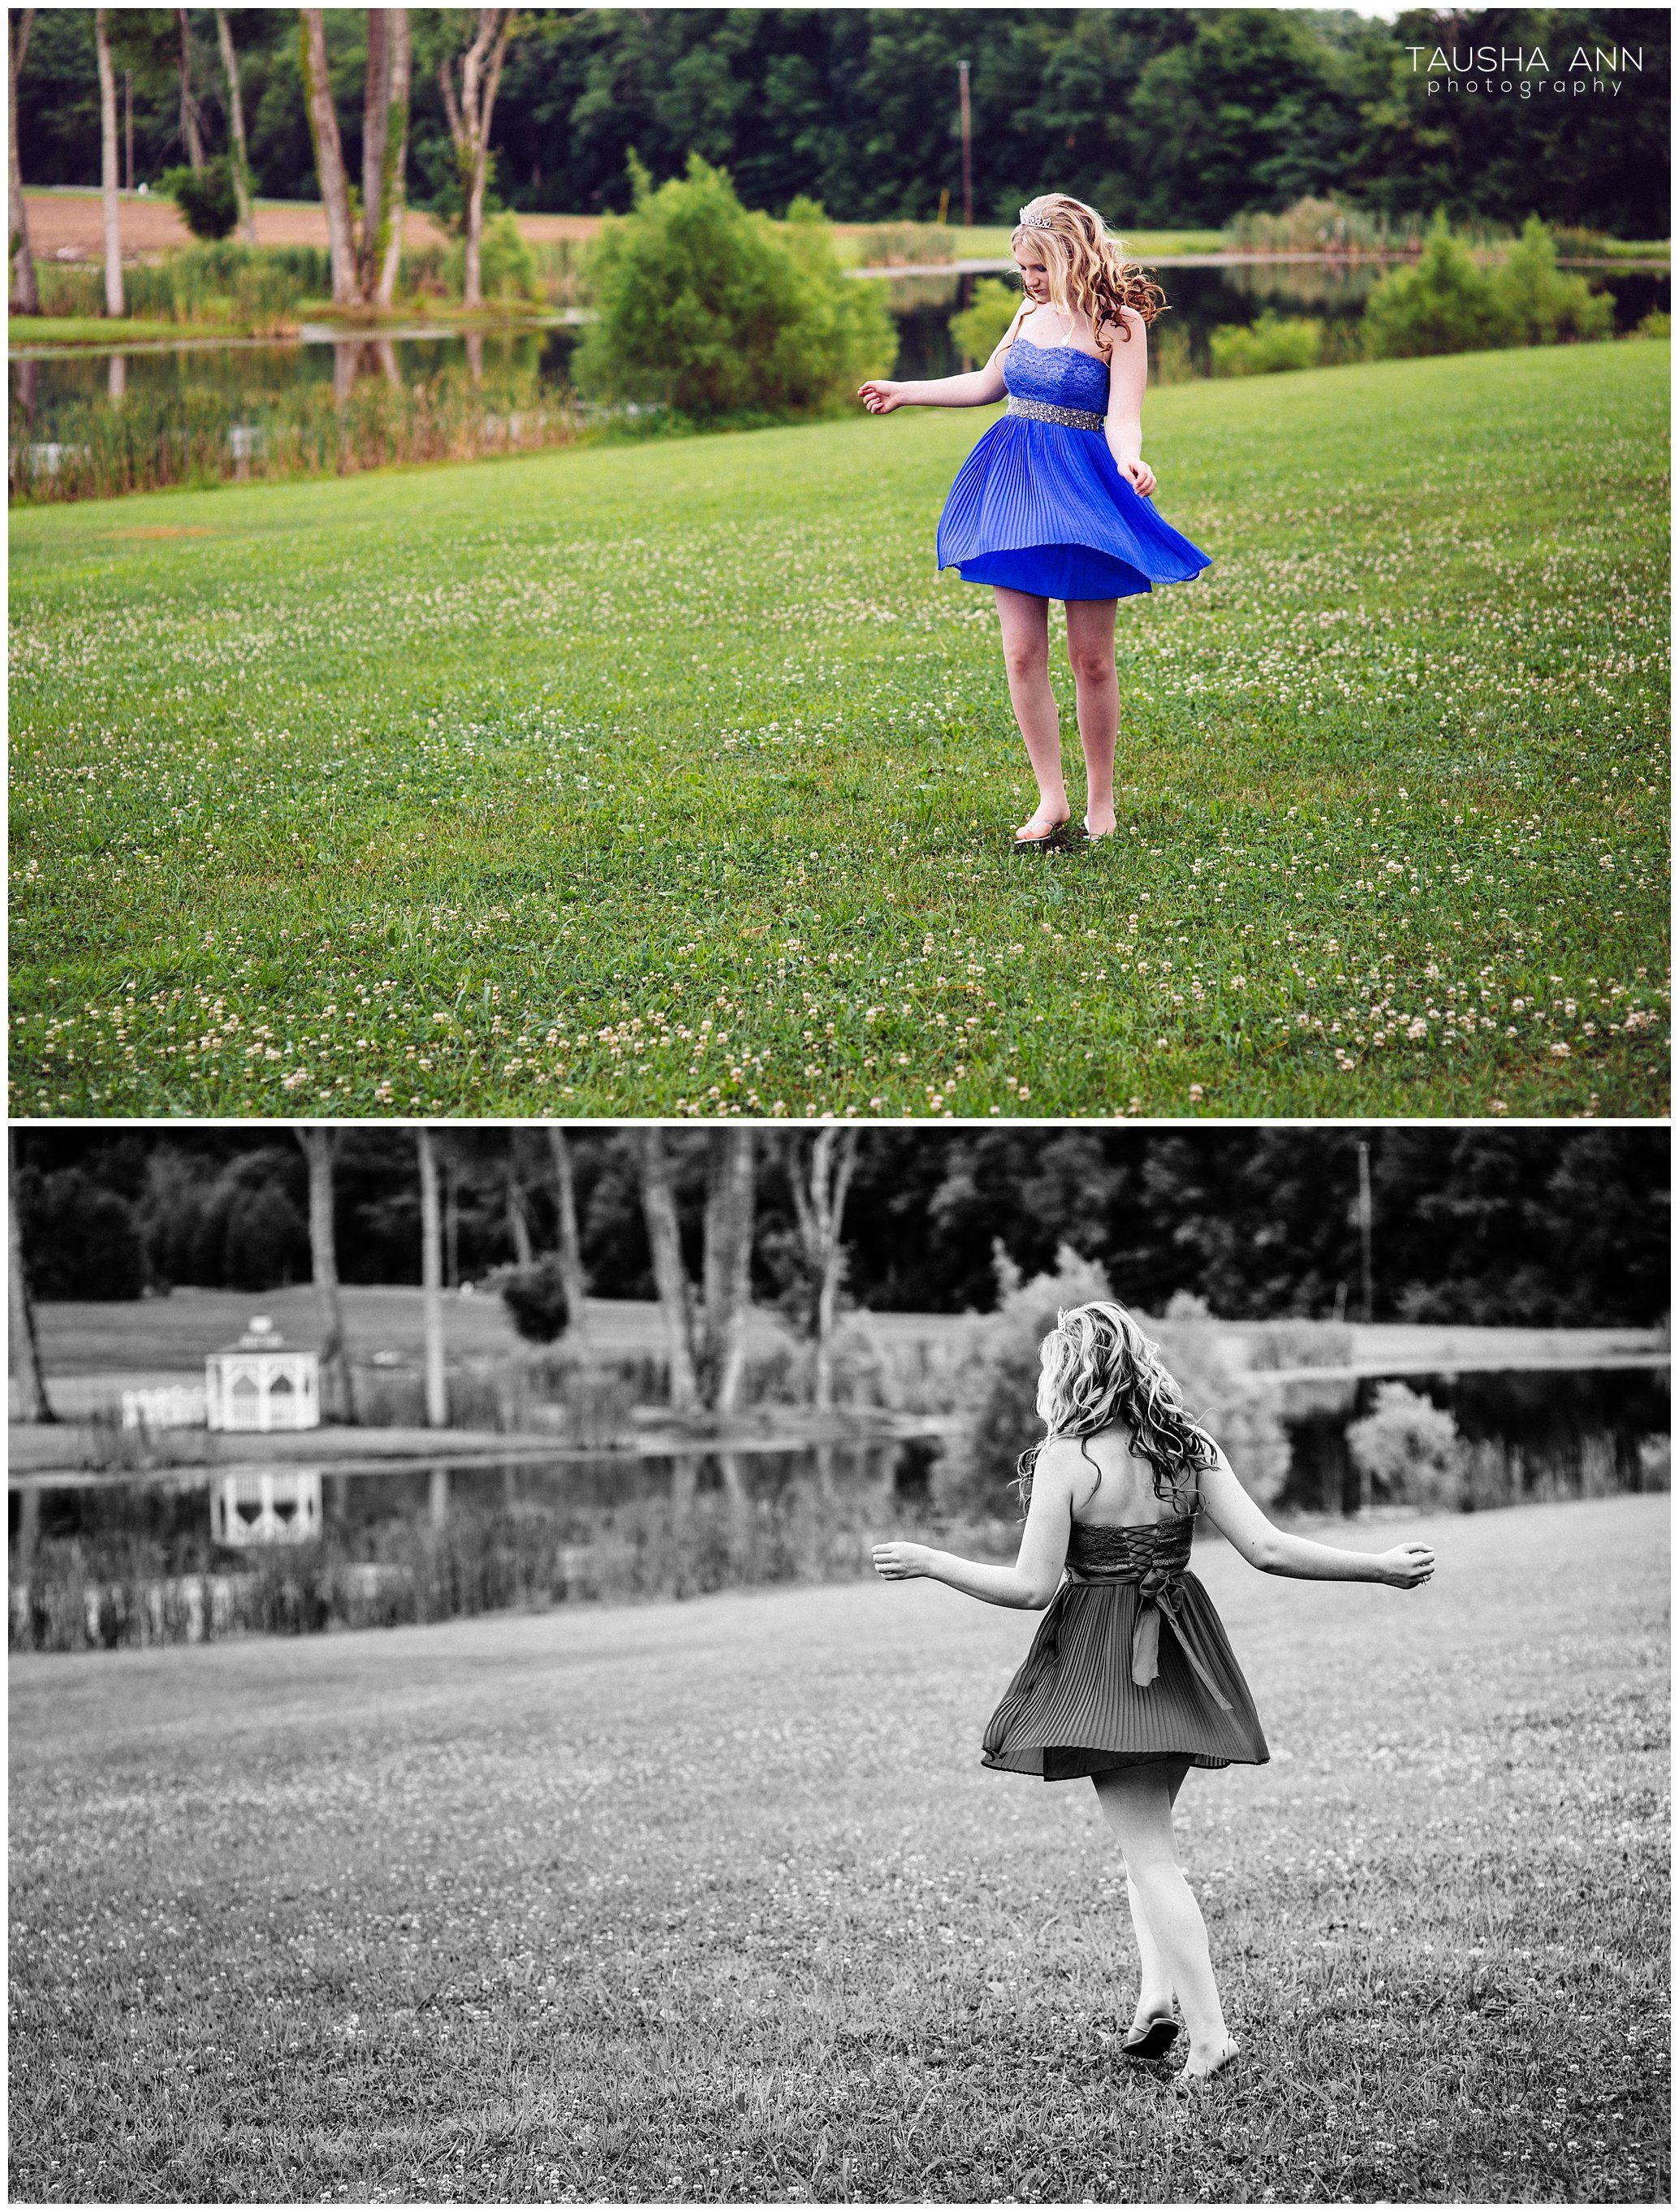 Sammie's_Sweet_16_Duck_Pond_Farm_Mt_Juliet_Tausha_Ann_Photography_Model_Nashville_Franklin_Spinning_Blue_Dress_Tiara